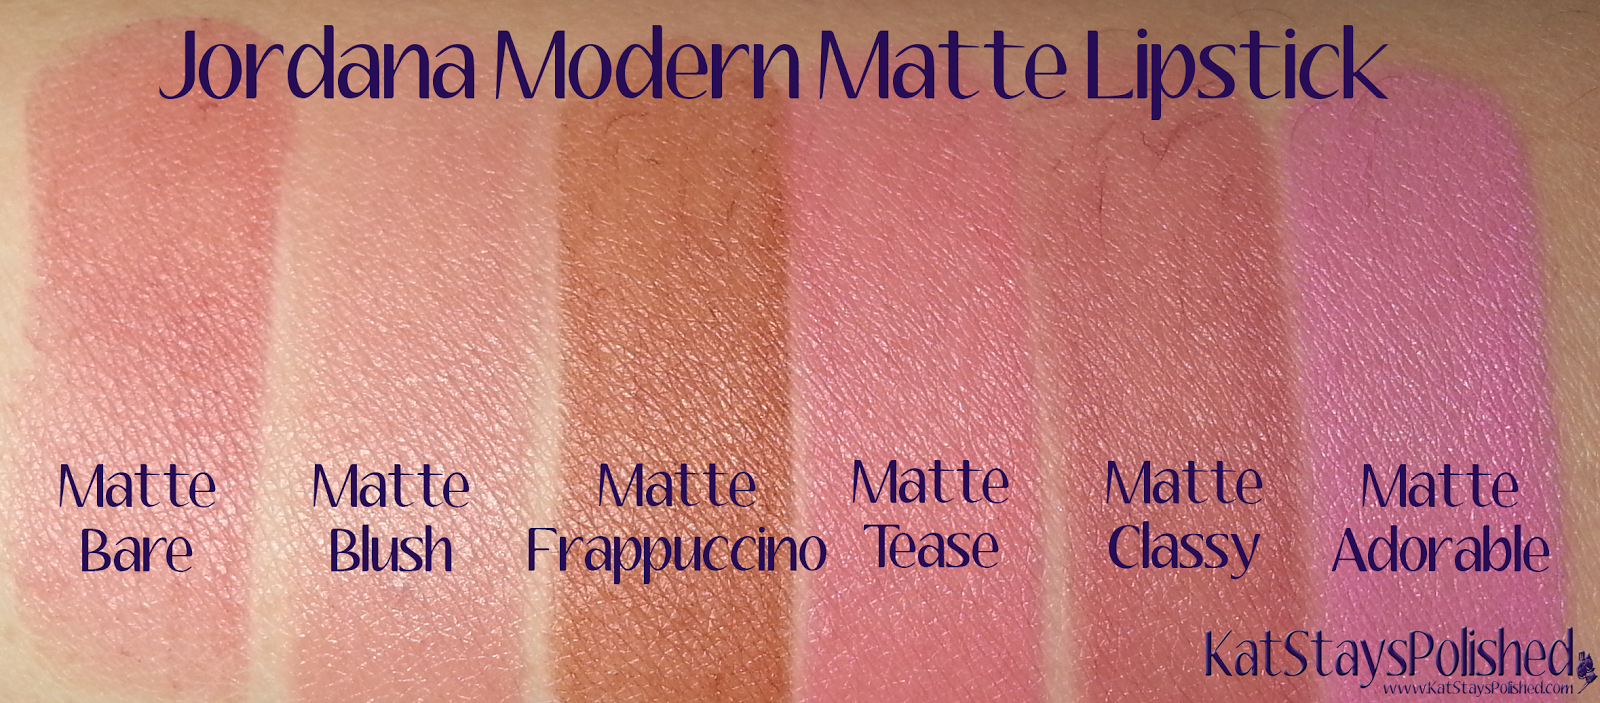 Jordana Modern Matte Lipstick | Kat Stays Polished